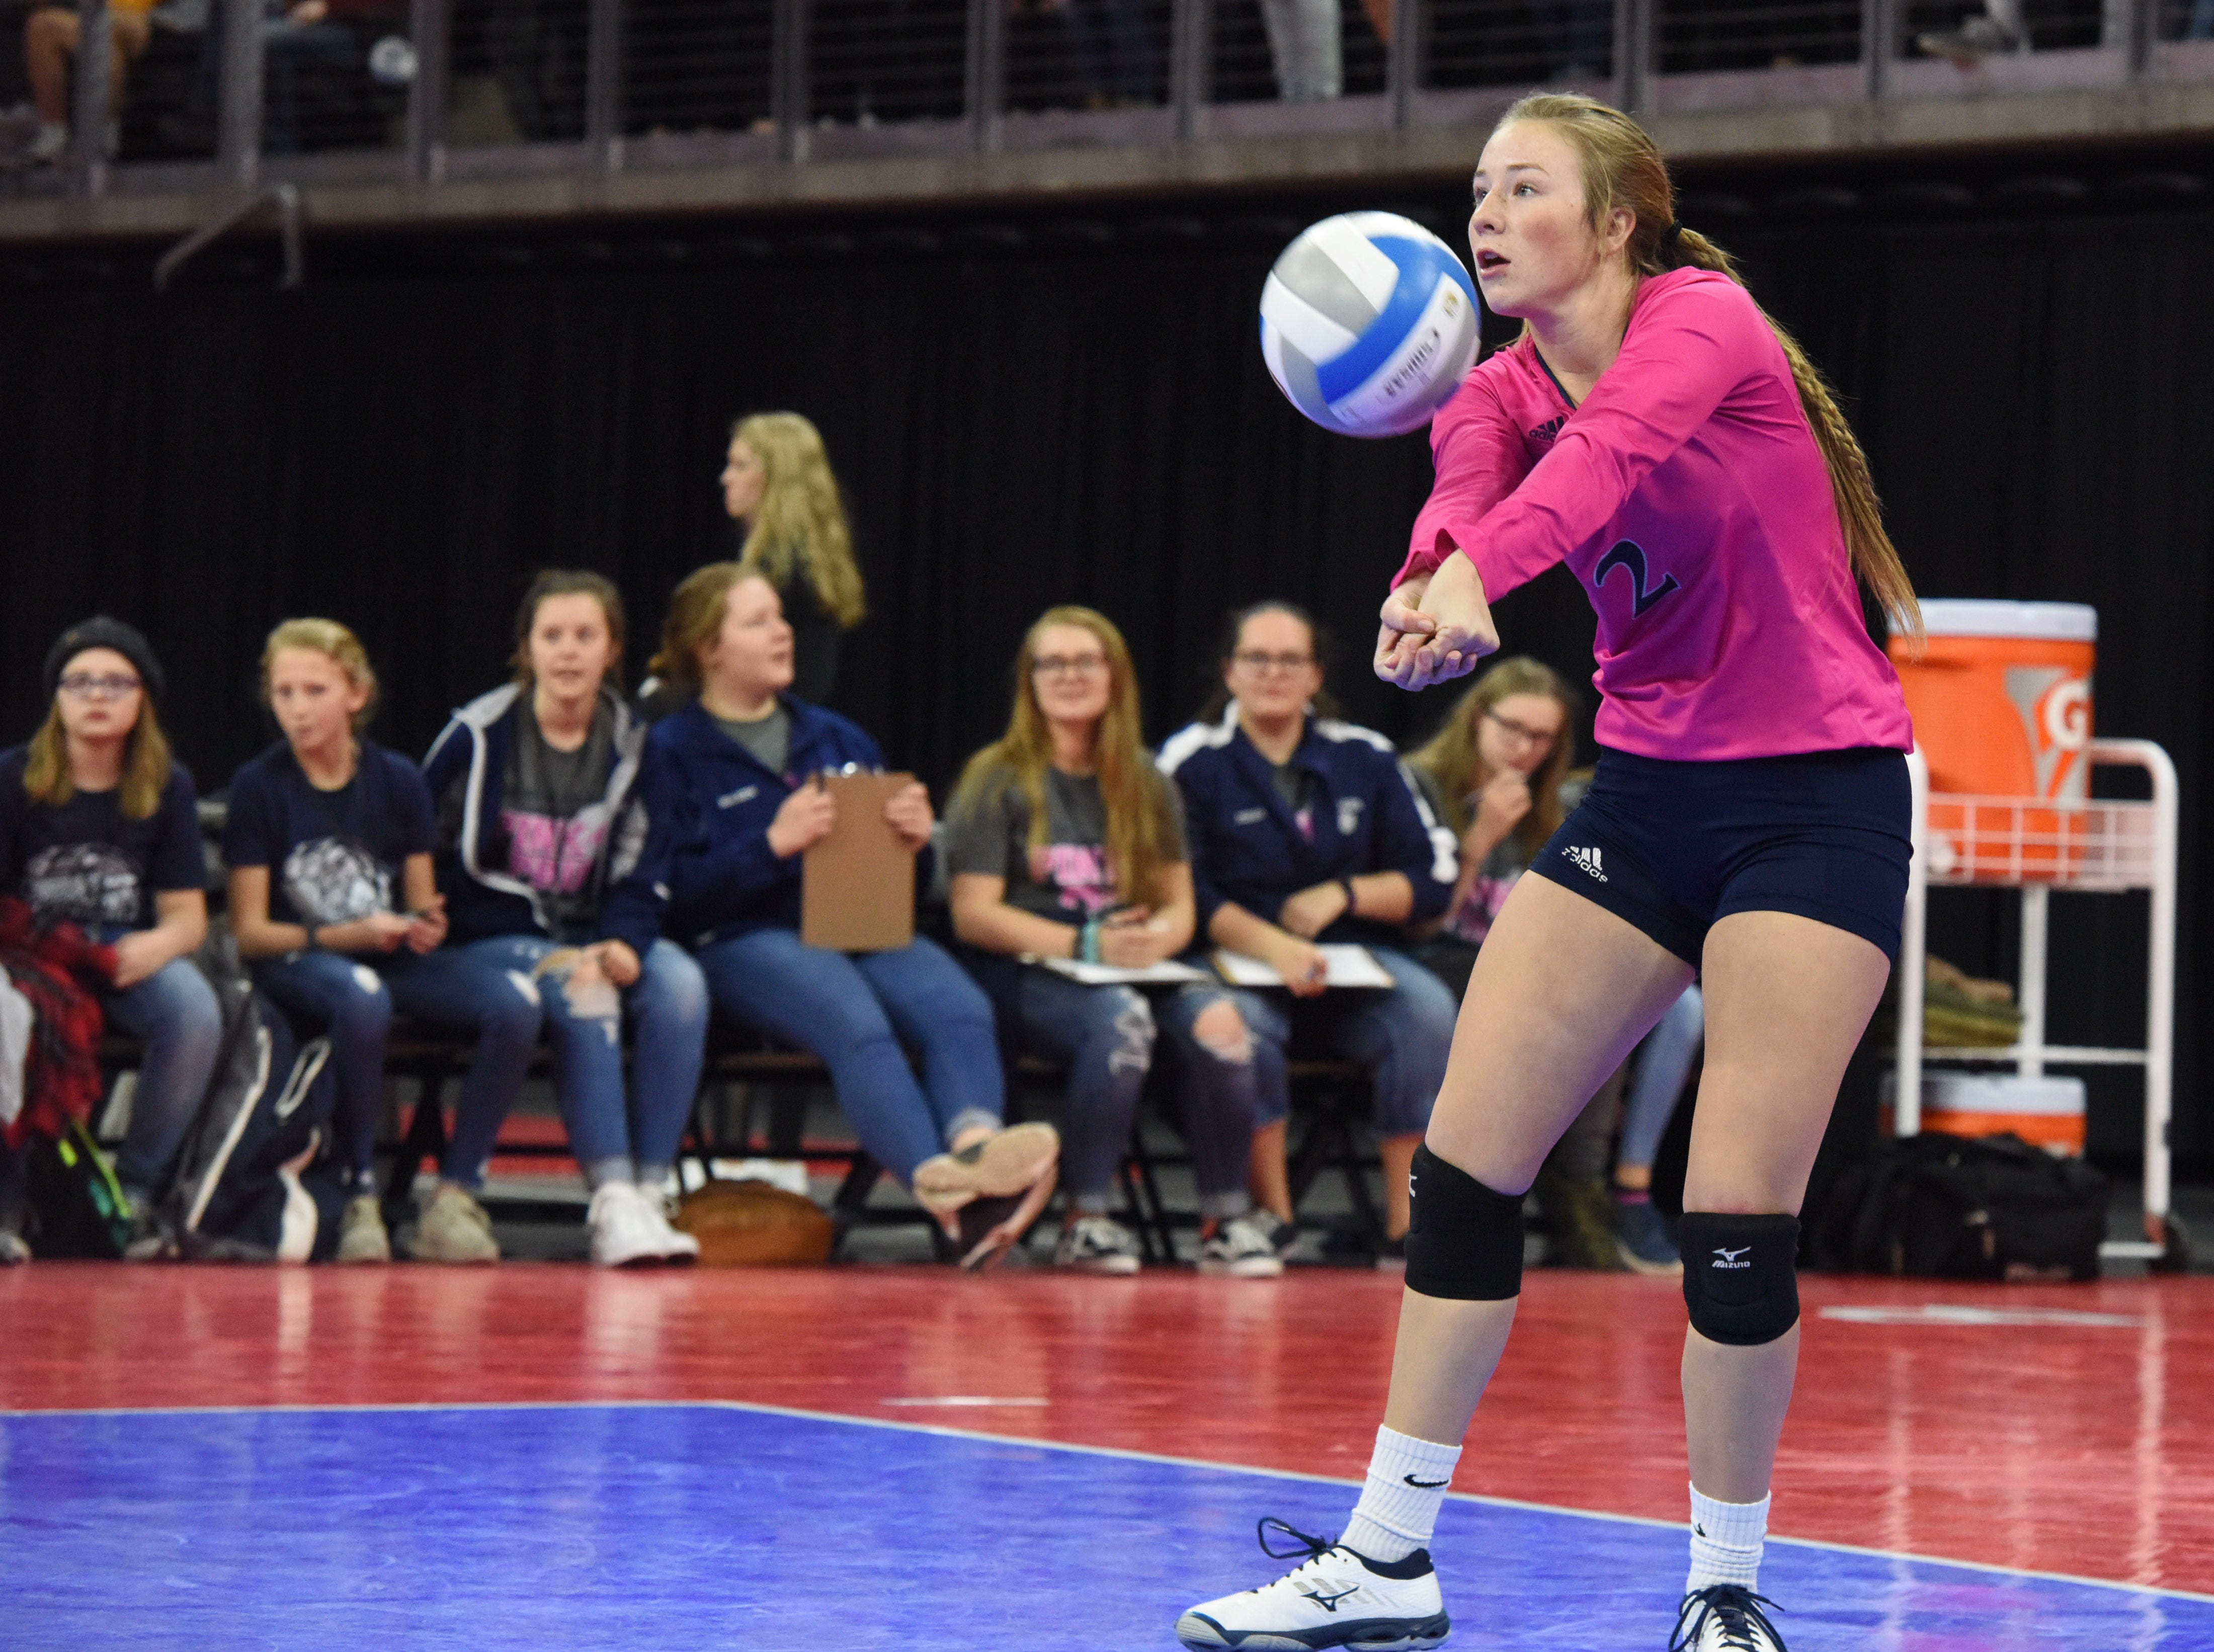 Burke's Lainee Schonebaum (2) bumps the ball during a match against Ethan, Friday, Nov. 16, 2018, at the Denny Sanford Premier Center in Sioux Falls, S.D.